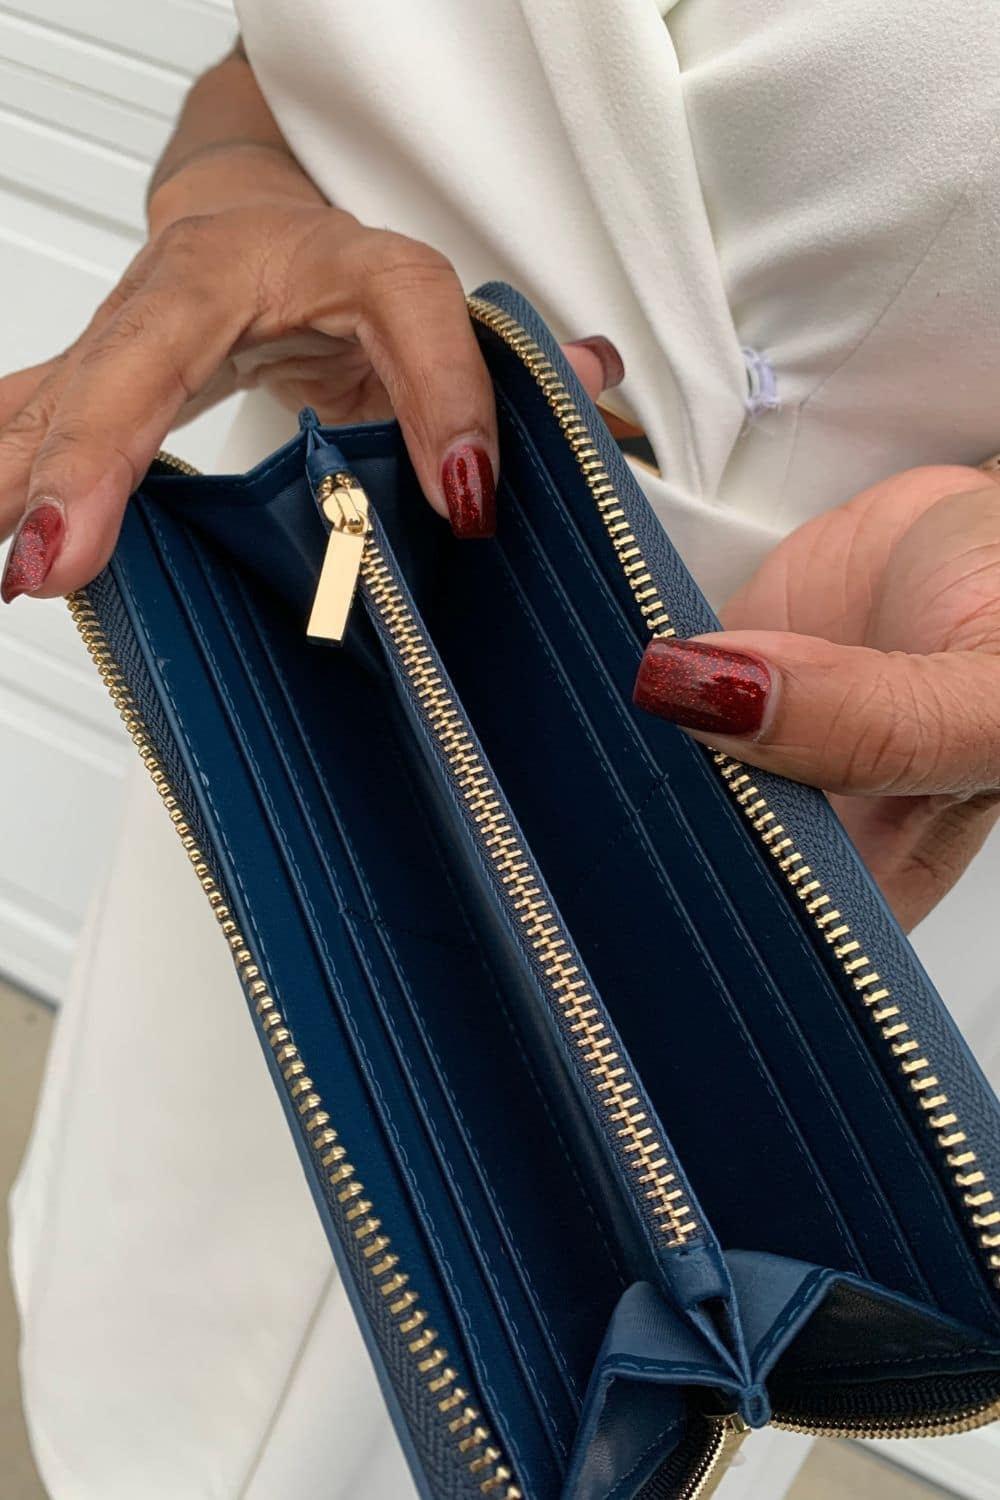 The Superhide wallet is highly-elastic and maintains its shape after compression or creasing #JORDPartner #JordHandbags #JORD